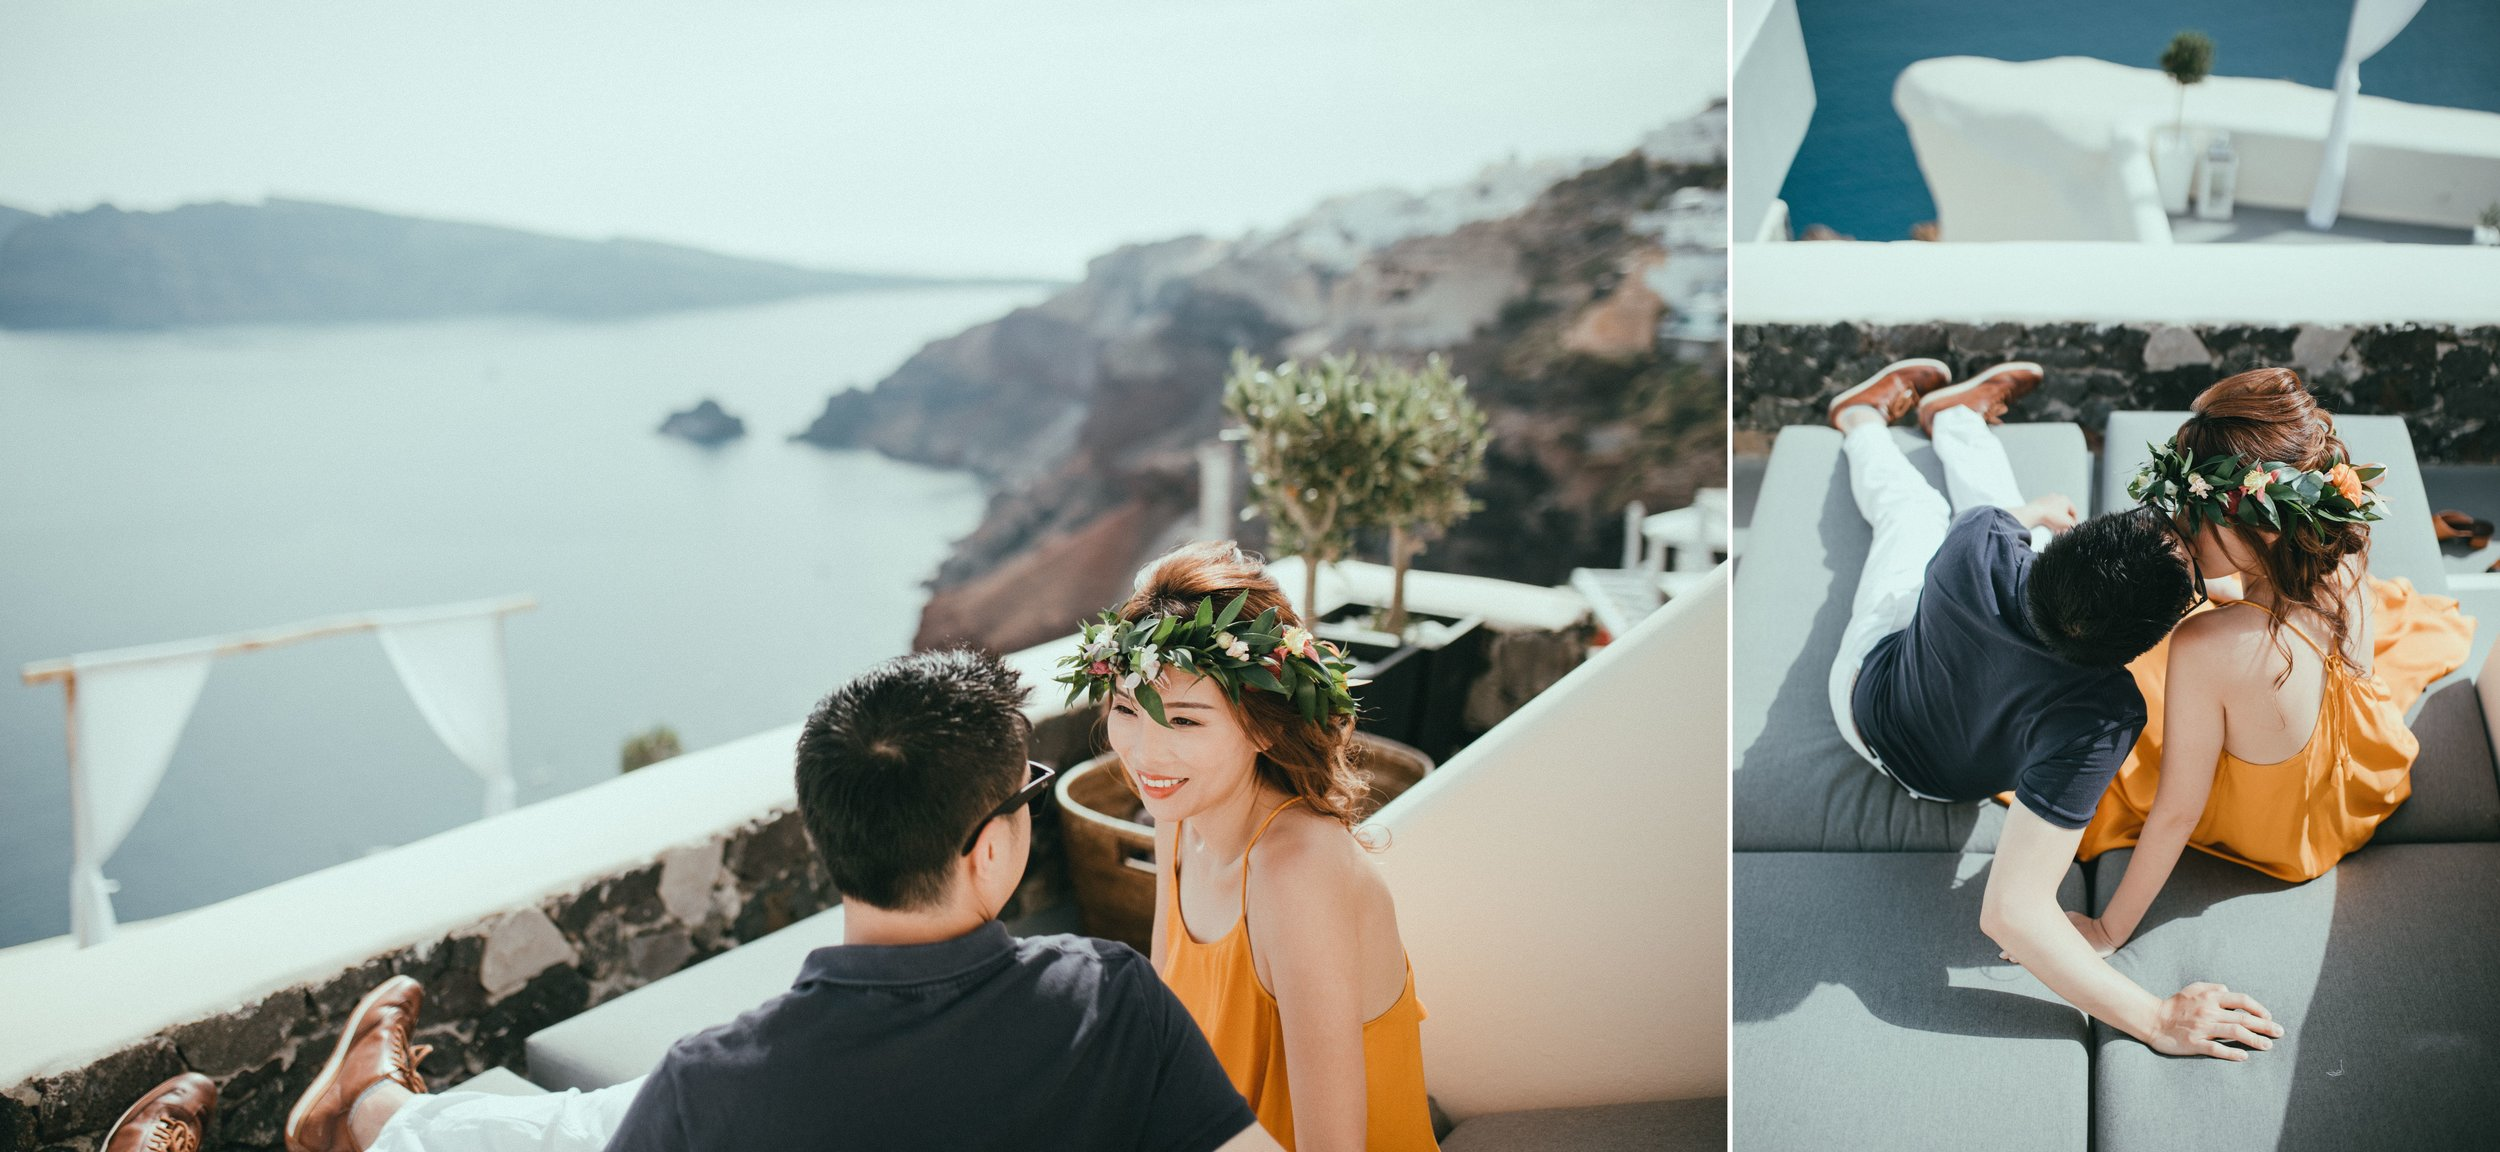 canaves-oia-wedding-santorini(3).jpg